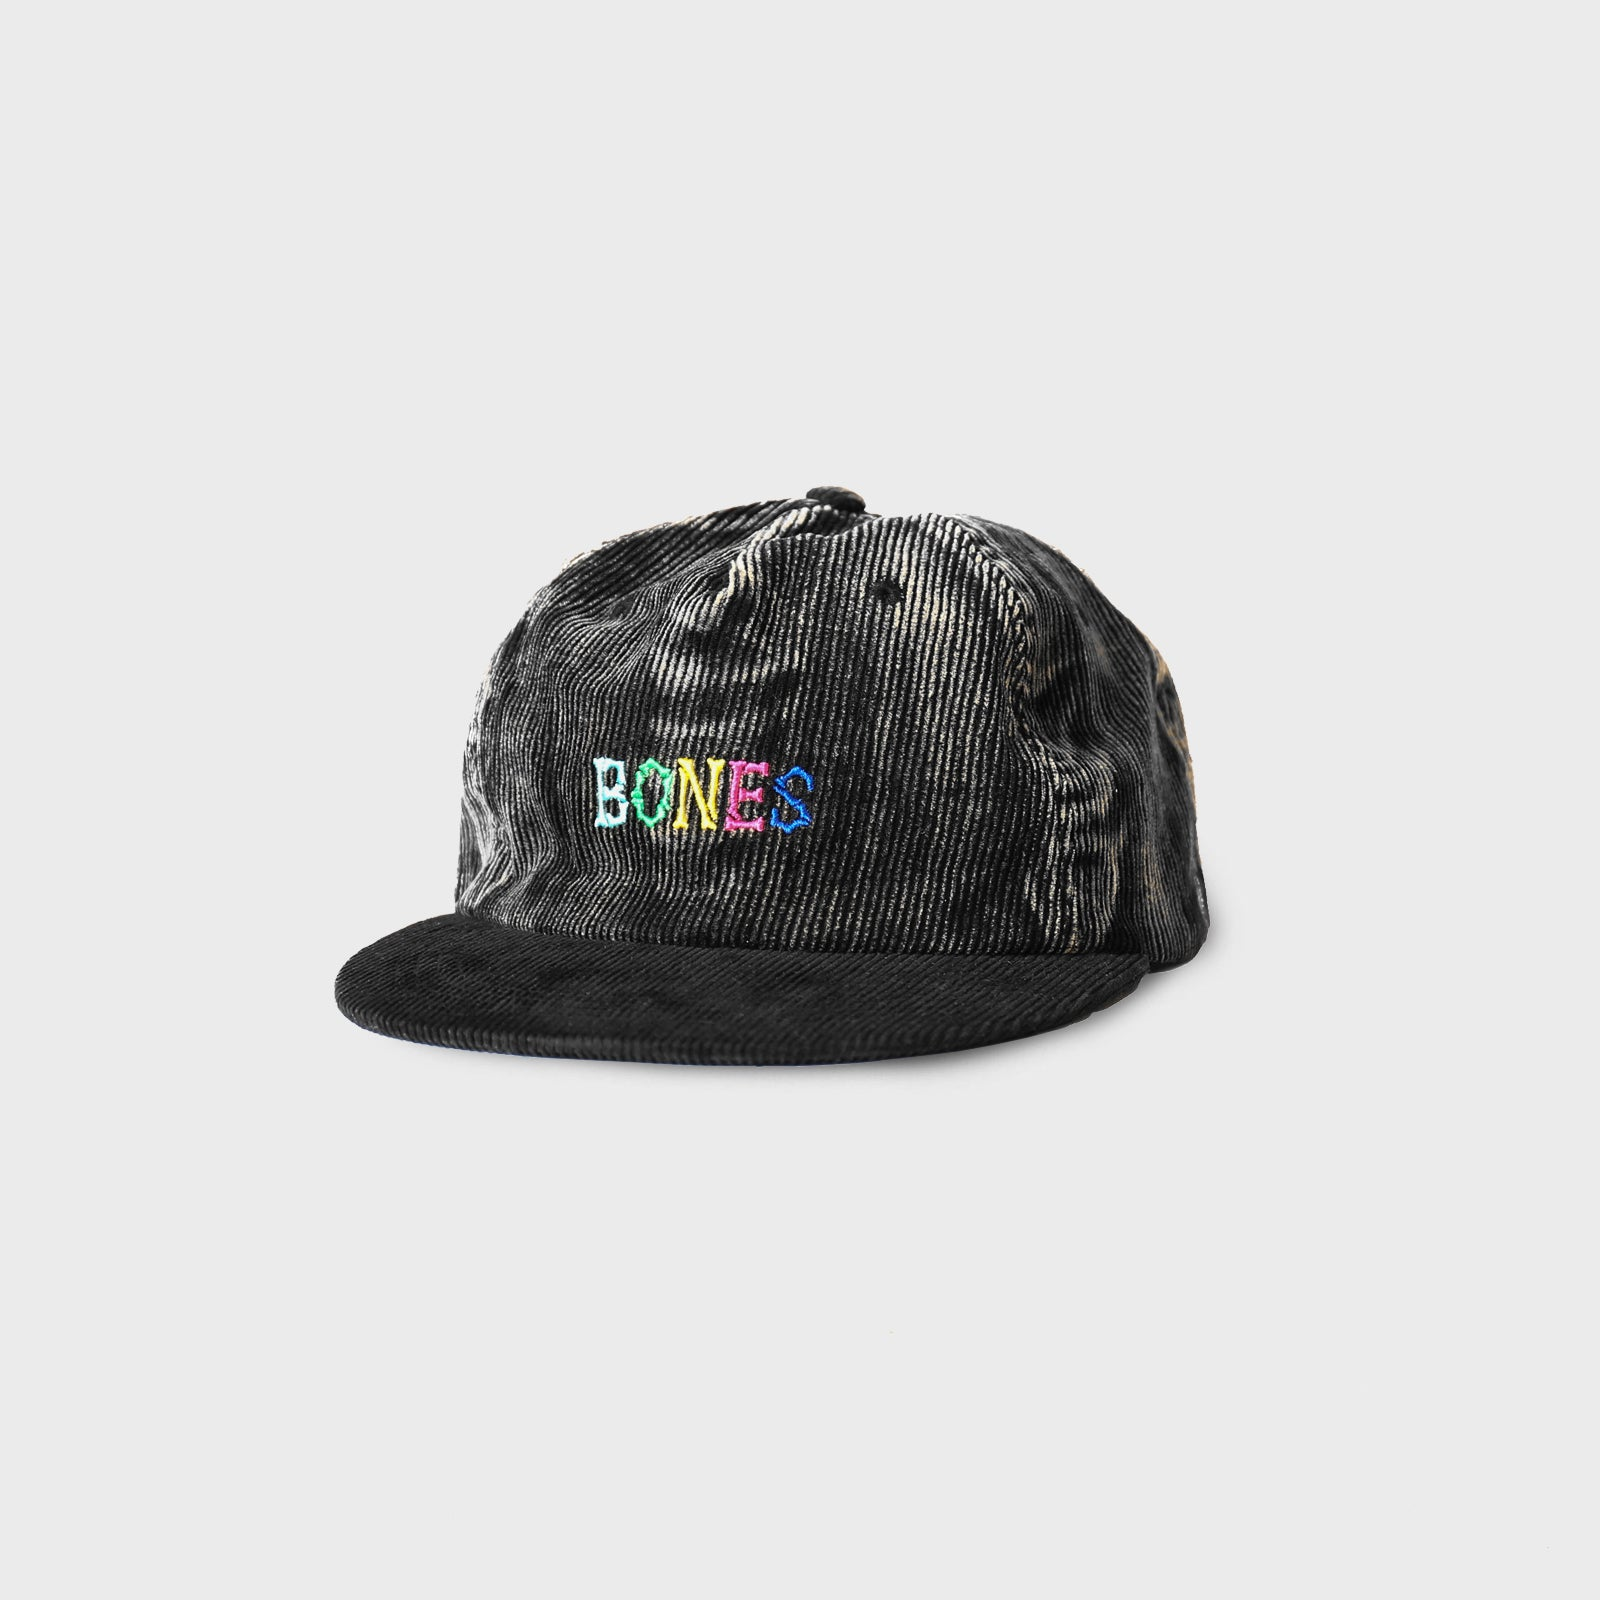 Bones Club Dad Hat - Corduroy Stripe